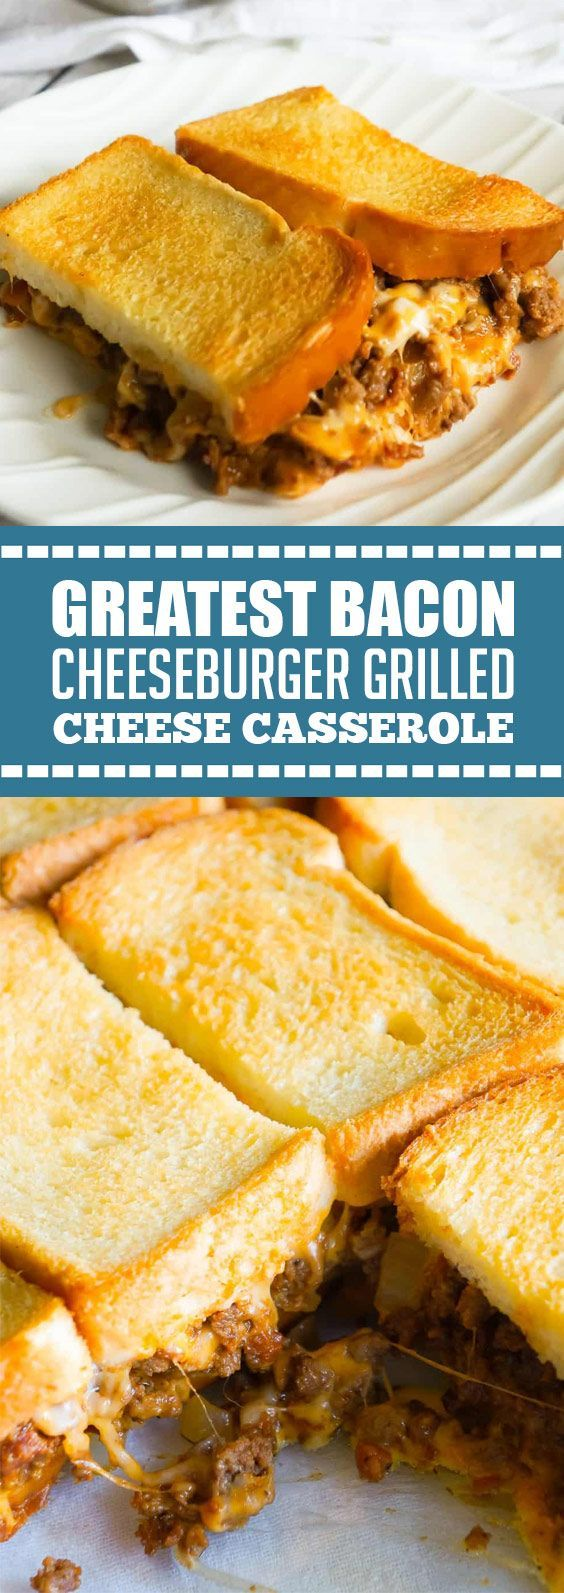 ★★★★★ 74 reviews: Greatest Bacon Cheeseburger Grilled Cheese Casserole | This Bacon Cheeseburger Grilled Cheese Casserole is an easy hamburger casserole recipe loaded with ground beef, onions and cheese all sandwiched between layers of toasted bread. #cheeseburger #bacon #casserole #easyrecipes | yourkeepinfo.blogspot.com #hamburgercasserolerecipe ★★★★★ 74 reviews: Greatest Bacon Cheeseburger Grilled Cheese Casserole | This Bacon Cheeseburger Grilled Cheese Casserole is an #hamburgercassarole